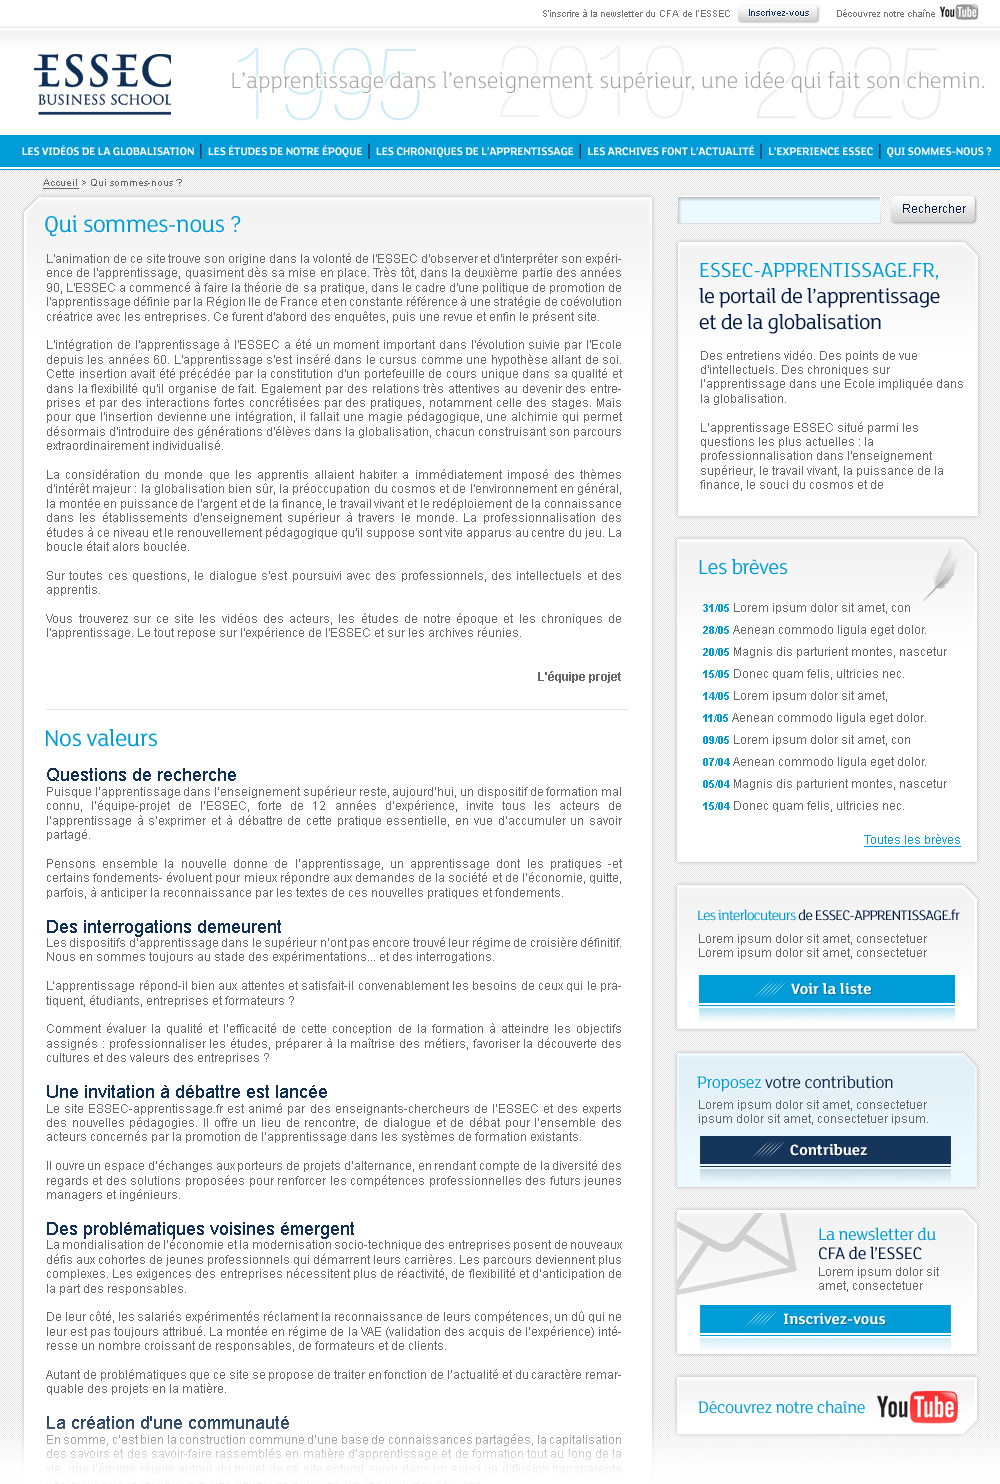 ESSEC Business School | Website - ABOUT